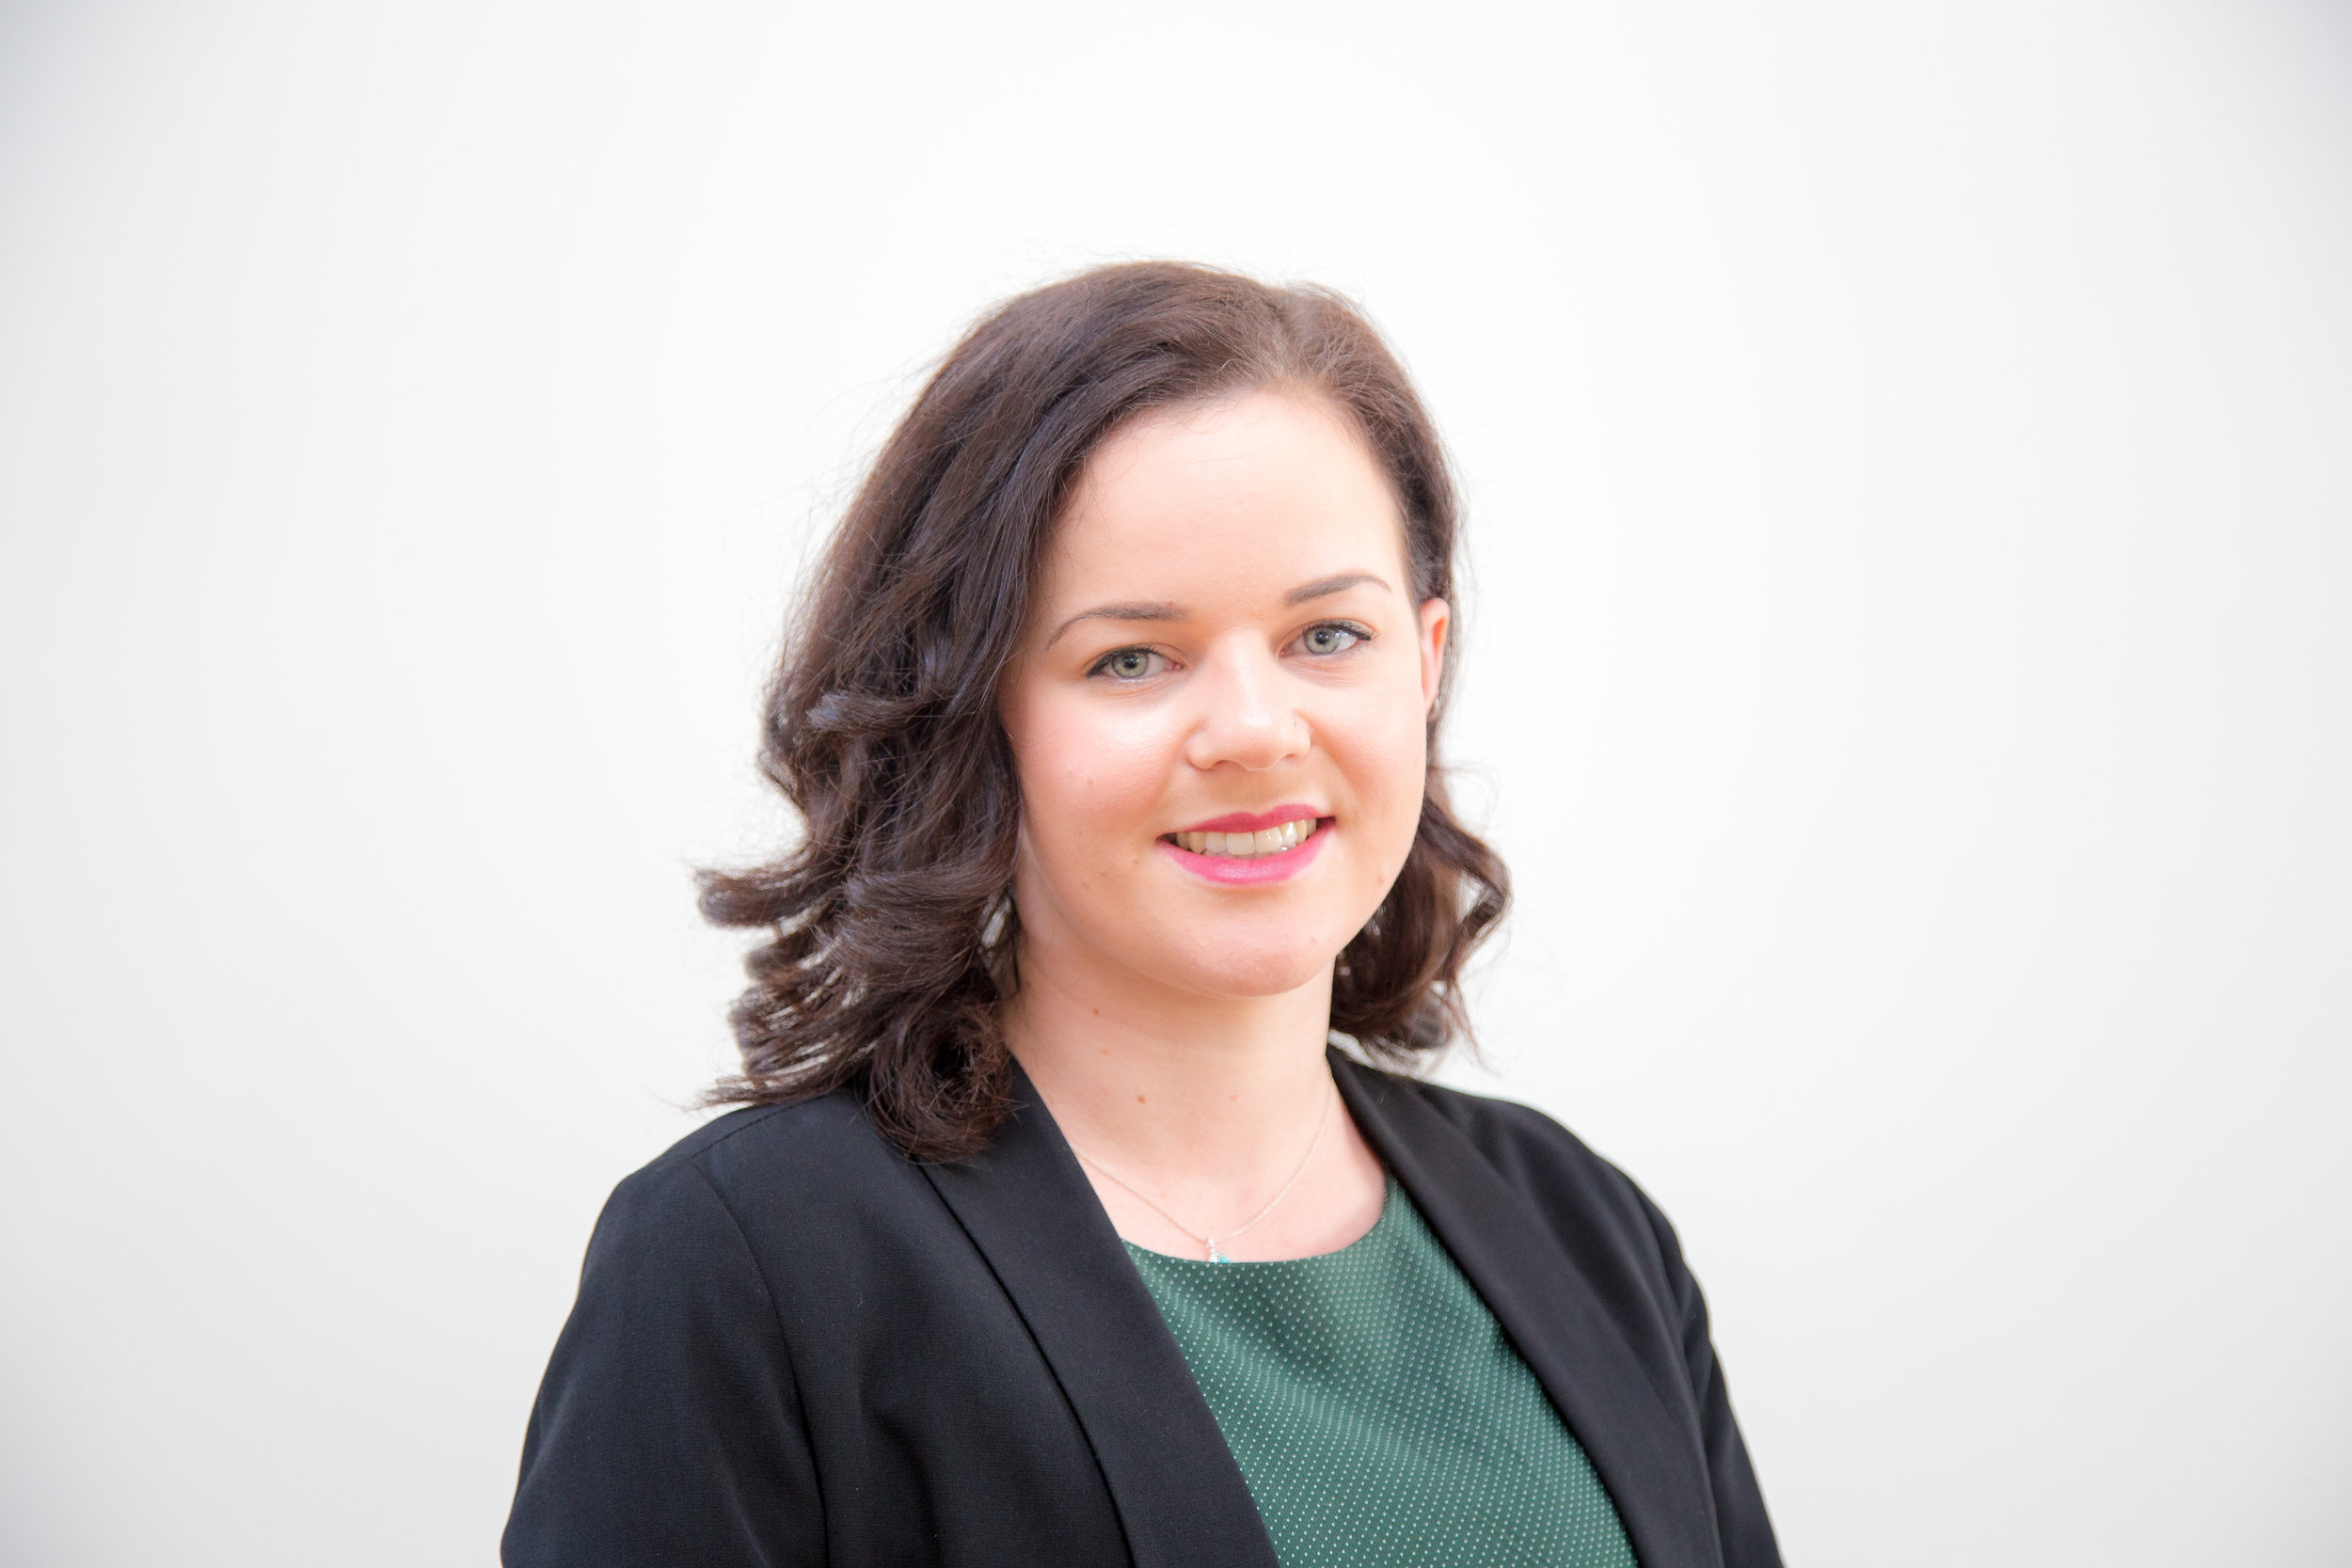 Jessica Etheridge — Wills, Probate, Powers of Attorney and Transfers of Equity